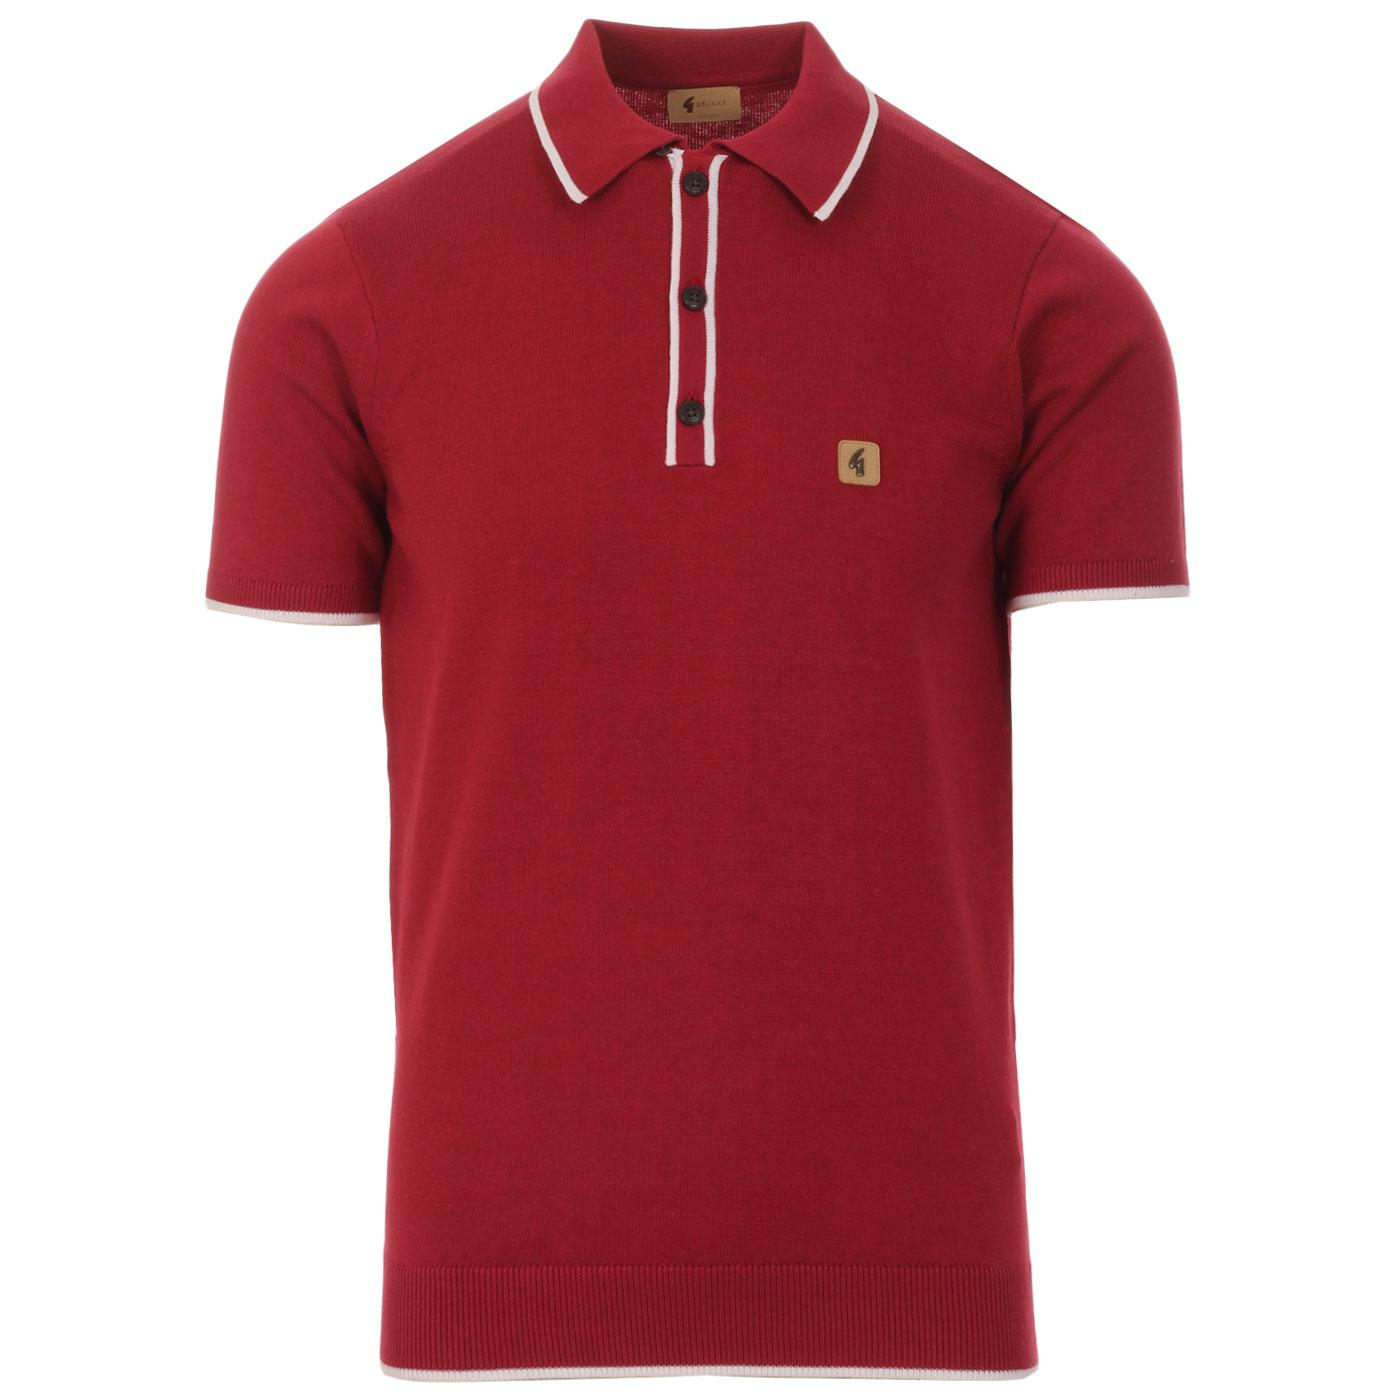 Lineker GABICCI VINTAGE Tipped Knit Polo TAYBERRY